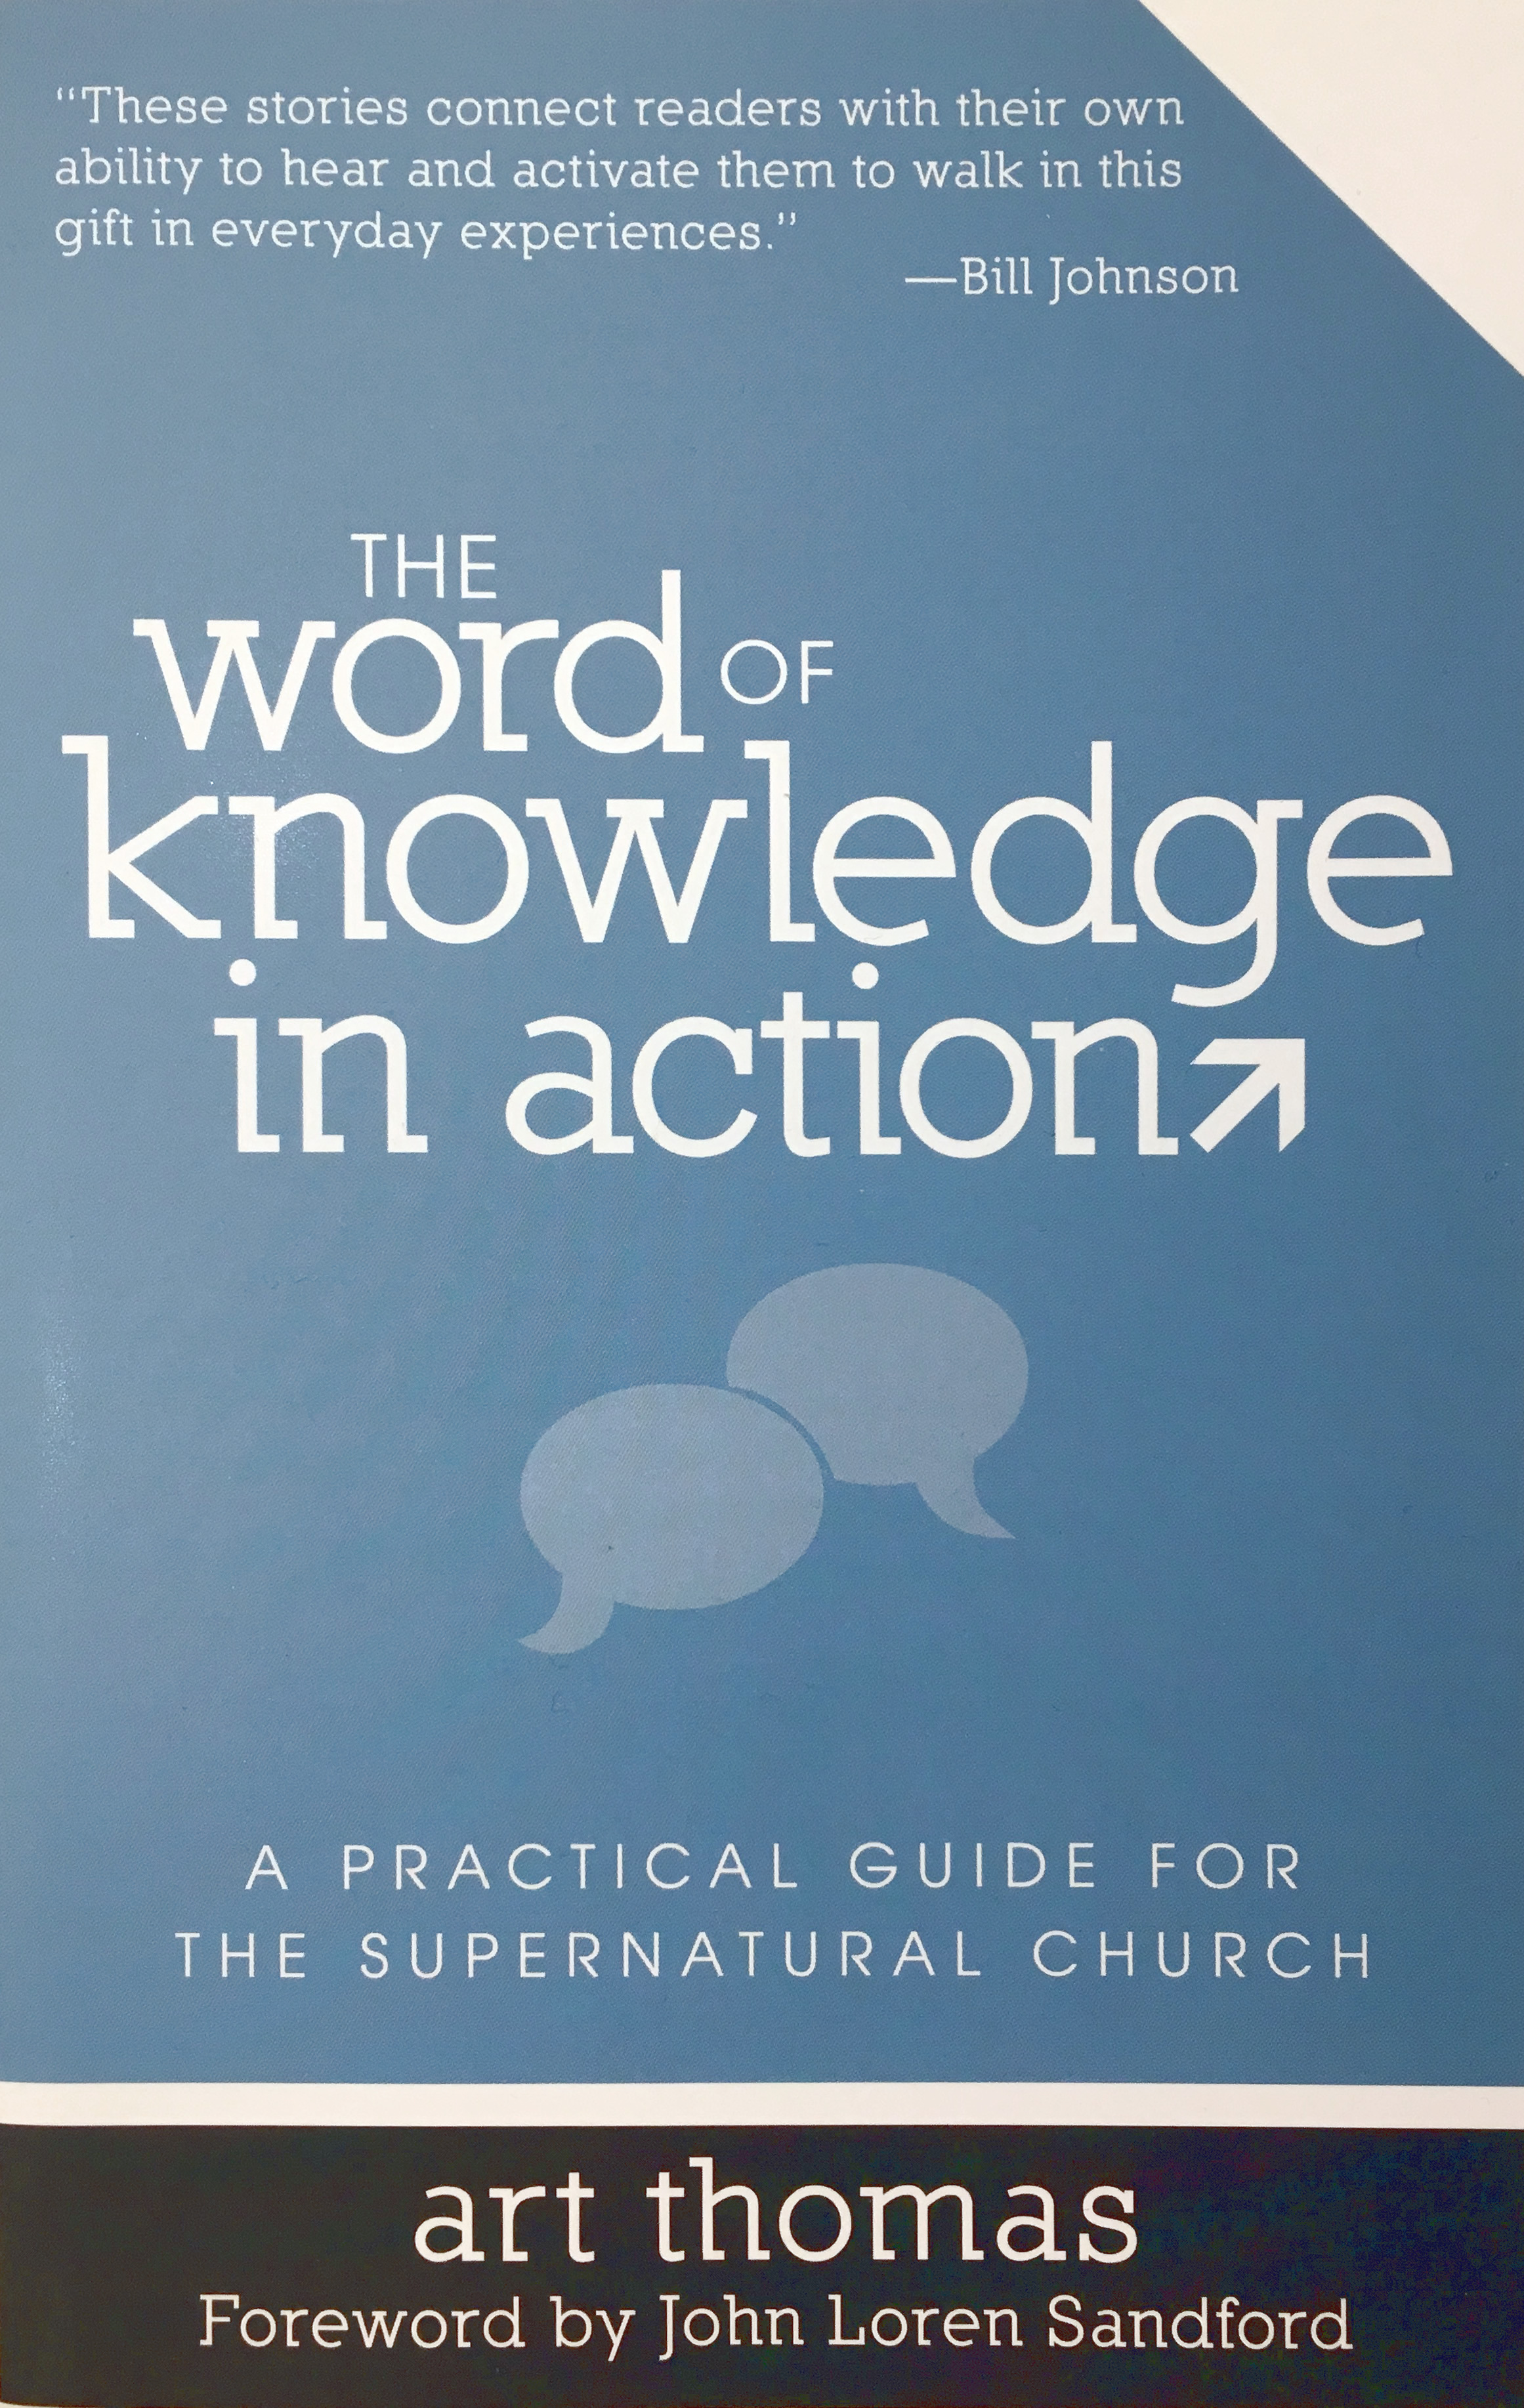 The Word of Knowledge in Action - Art Thomas